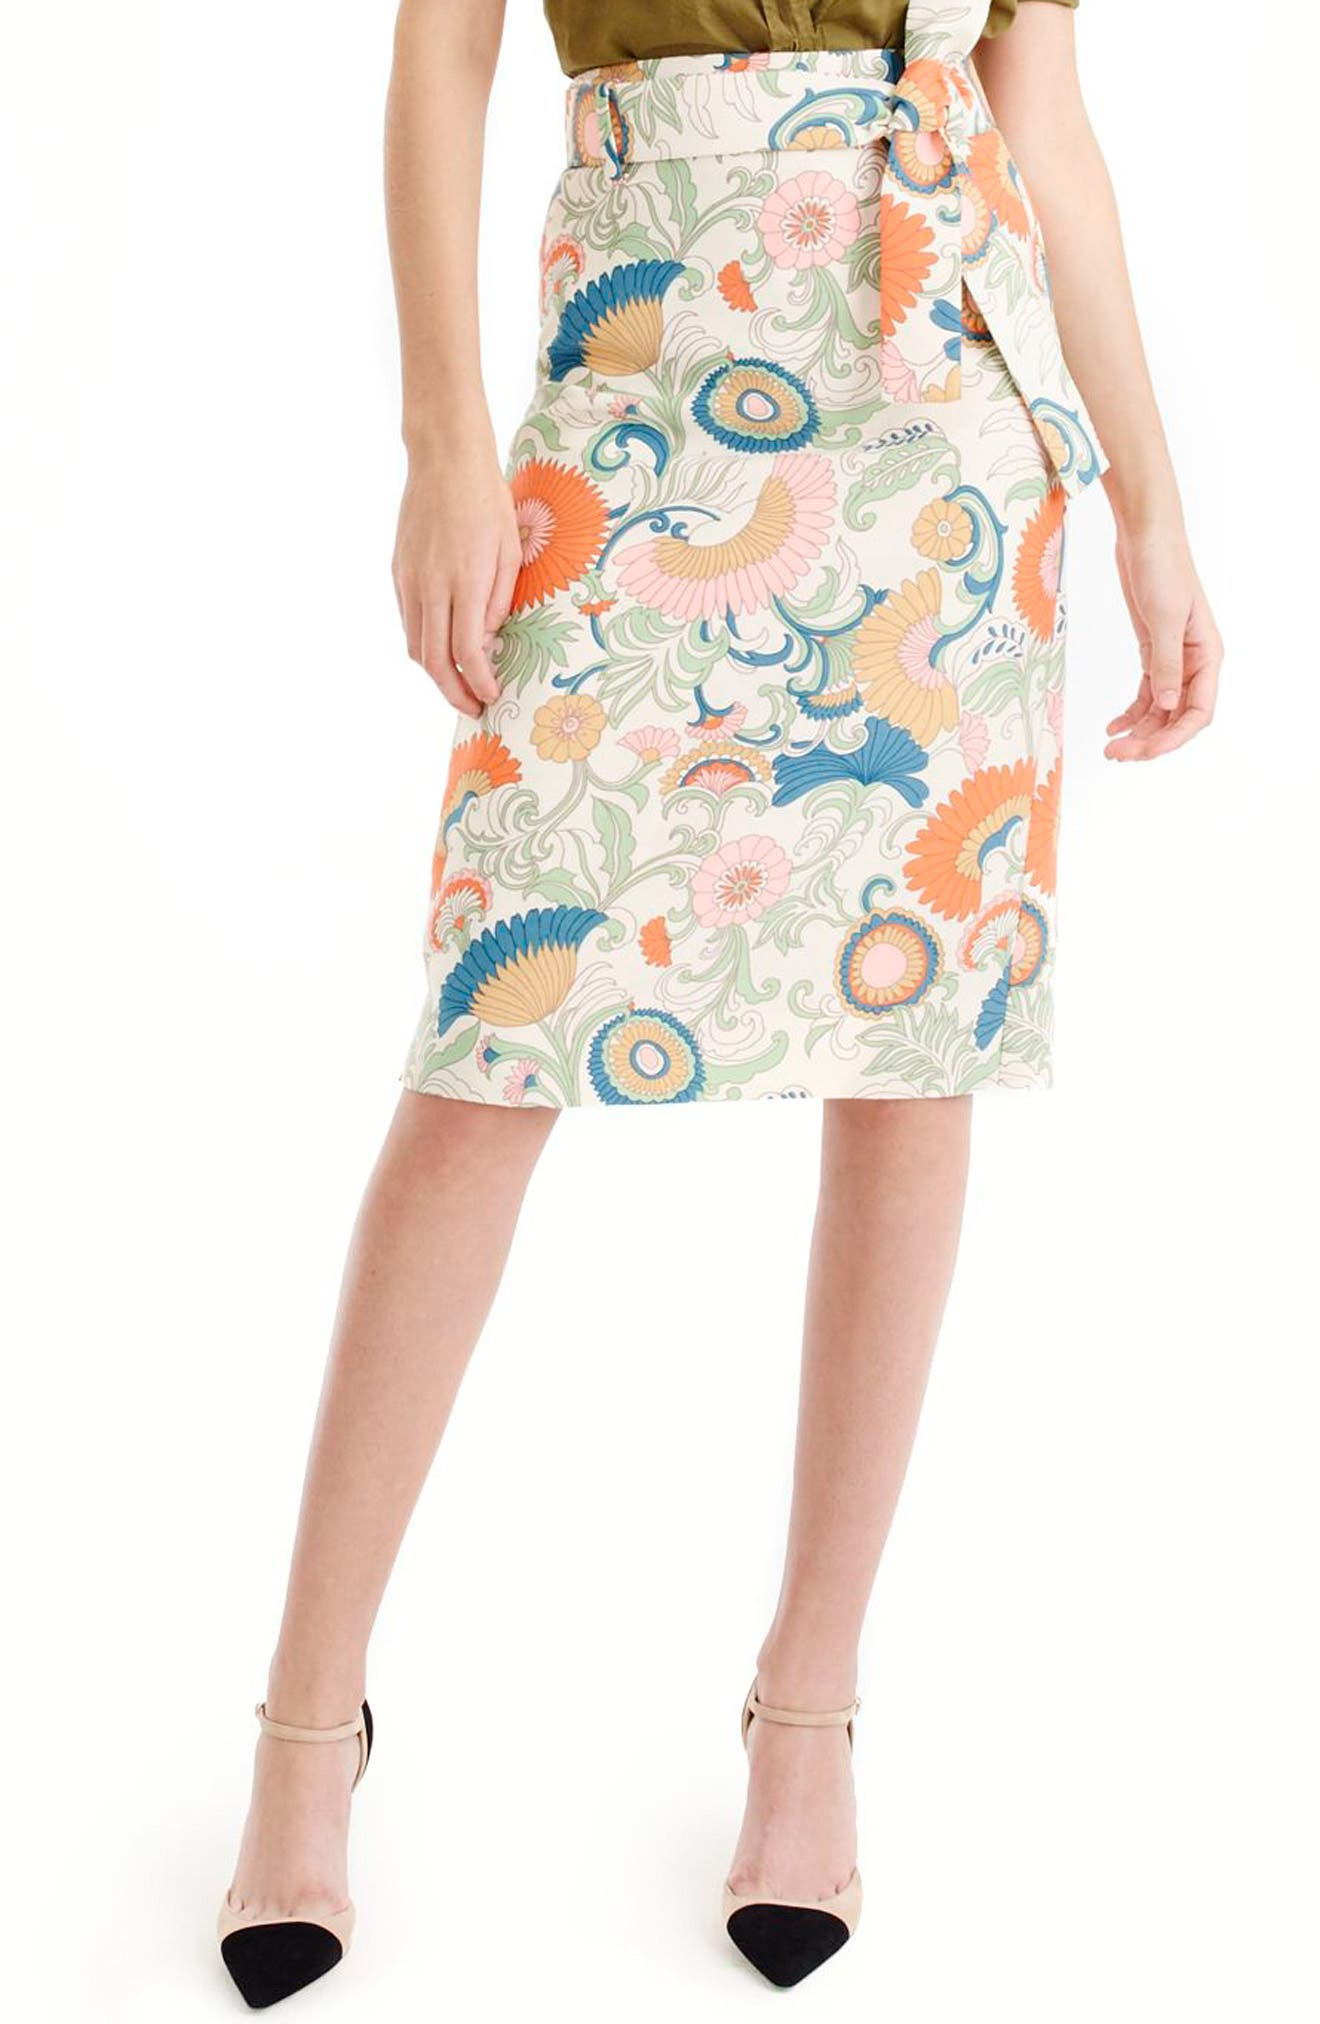 Alternate Image 1 Selected - J.Crew Tie Waist Ornate Floral Skirt (Regular & Petite)